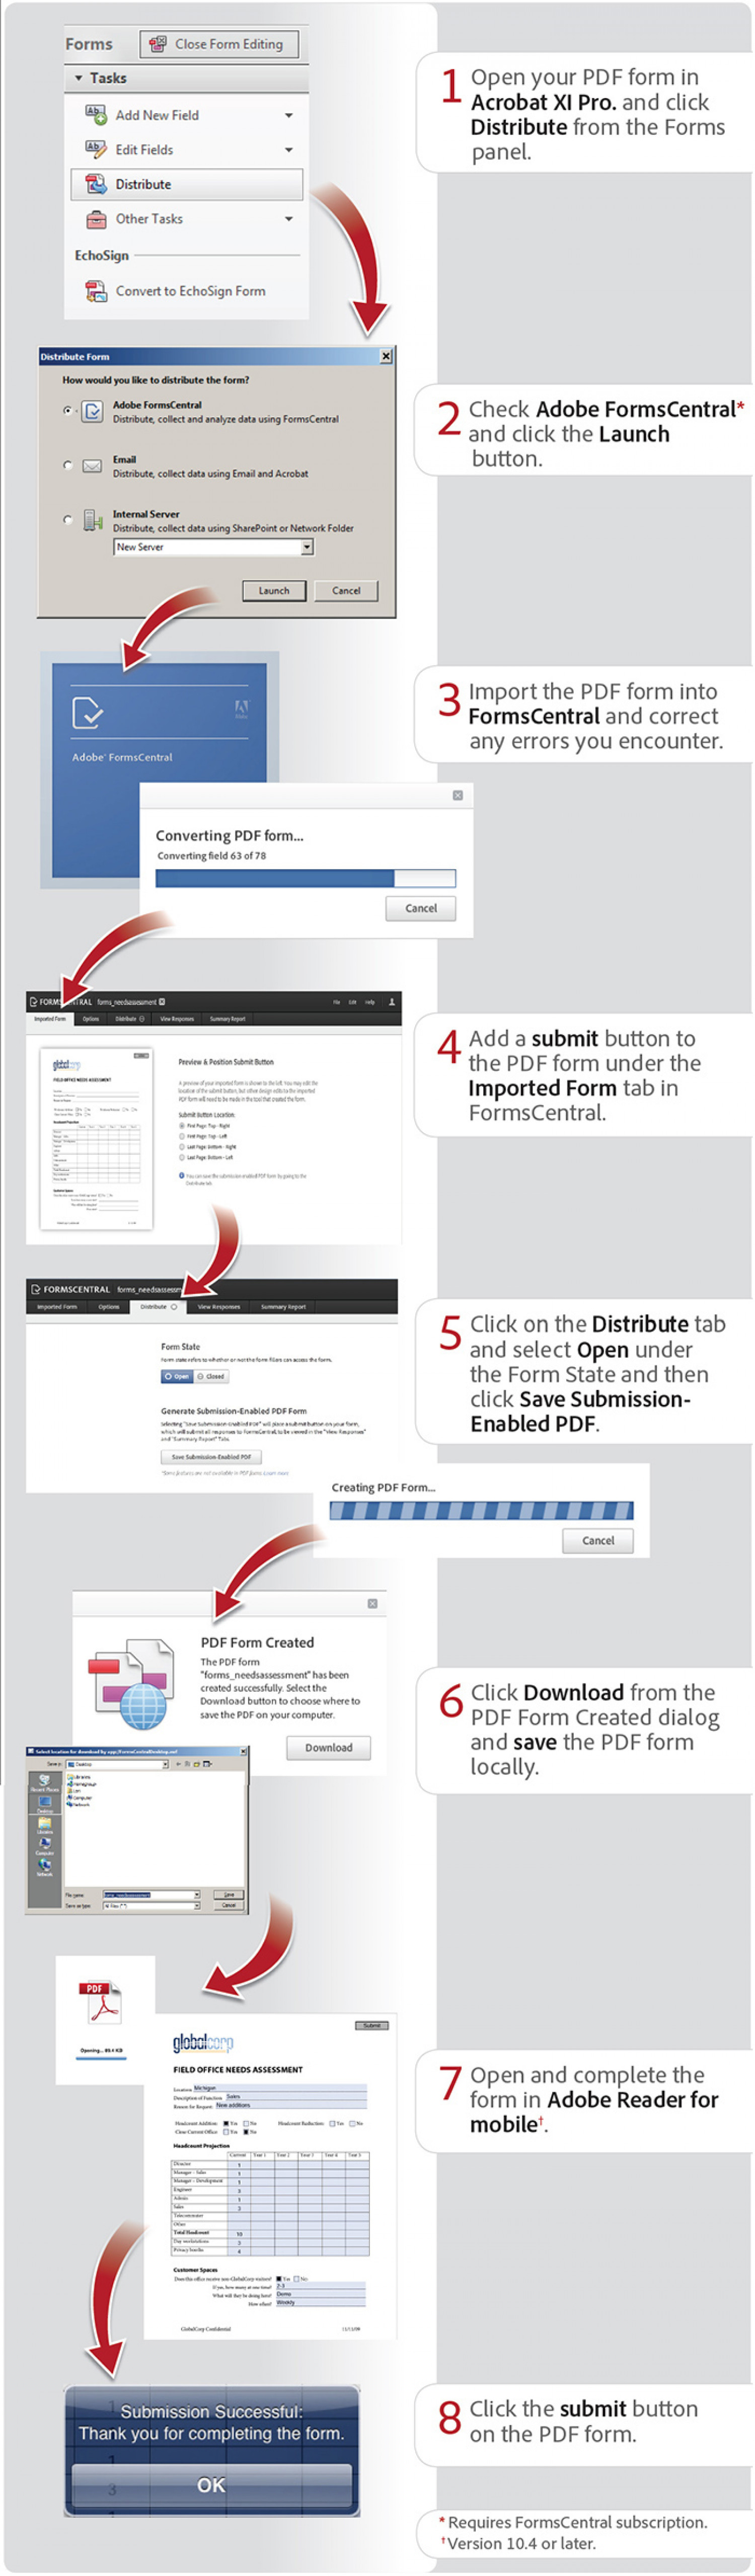 How to create PDF Forms for use on Mobile Devices Infographic